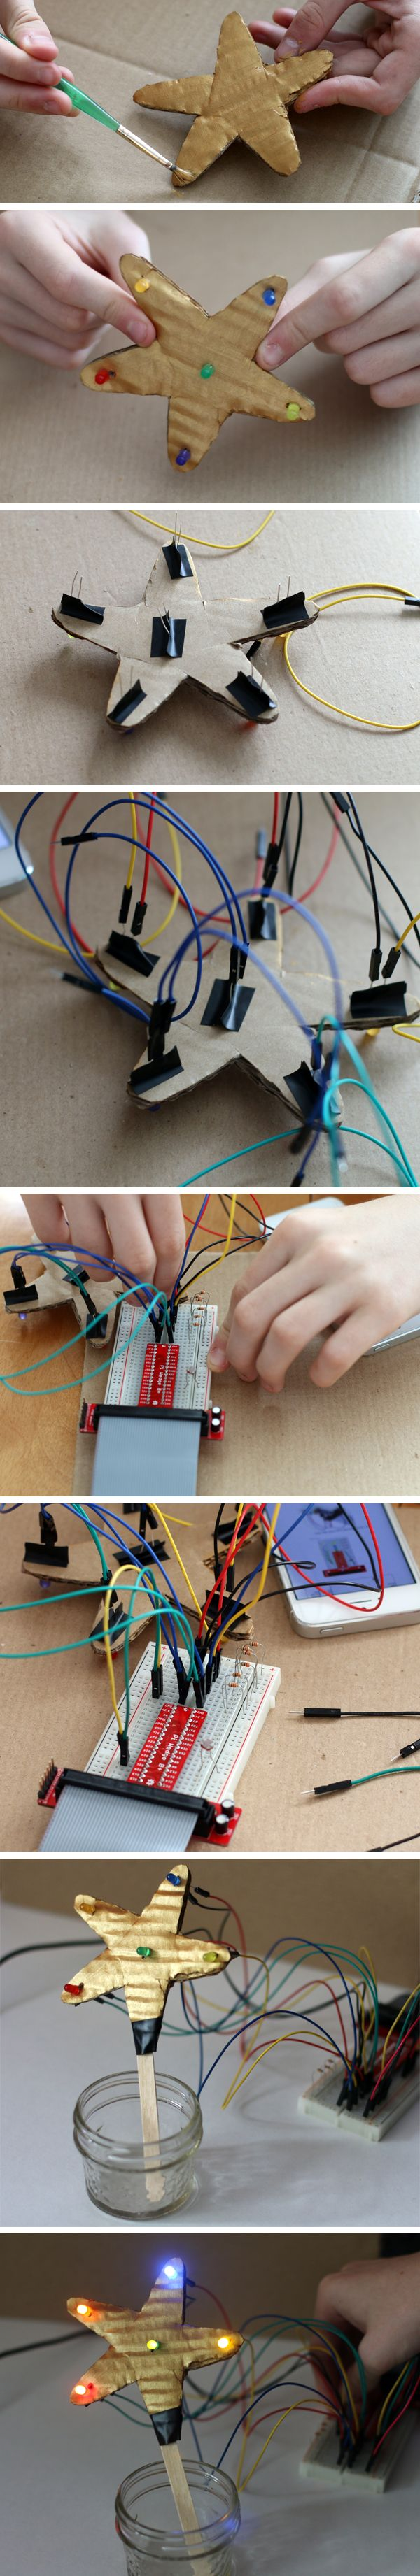 """""""Light Up the Season with Computer Science Exploration"""": a family explores Raspberry Pi. [Source: Science Buddies, http://www.sciencebuddies.org/blog/2014/12/light-up-the-season-with-computer-science-exploration.php?from=Pinterest] #STEM #Rpi #compsci #scratch"""